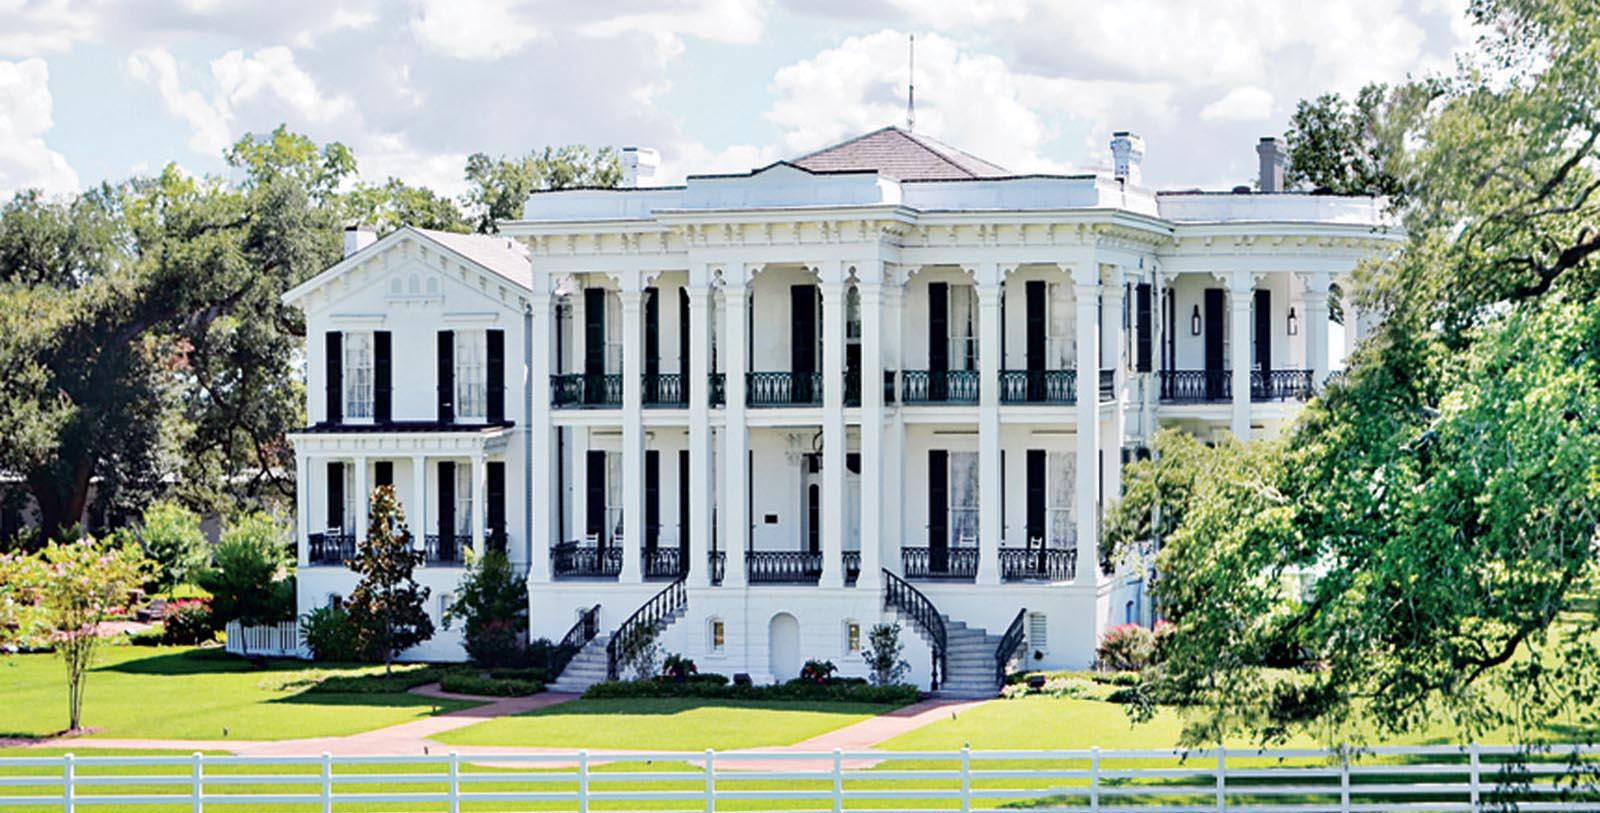 Image of Hotel Exterior, Nottoway Plantation and Resort, White Castle, Louisiana, 1859, Member of Historic Hotels of America, Special Offers, Discounted Rates, Families, Romantic Escape, Honeymoons, Anniversaries, Reunions